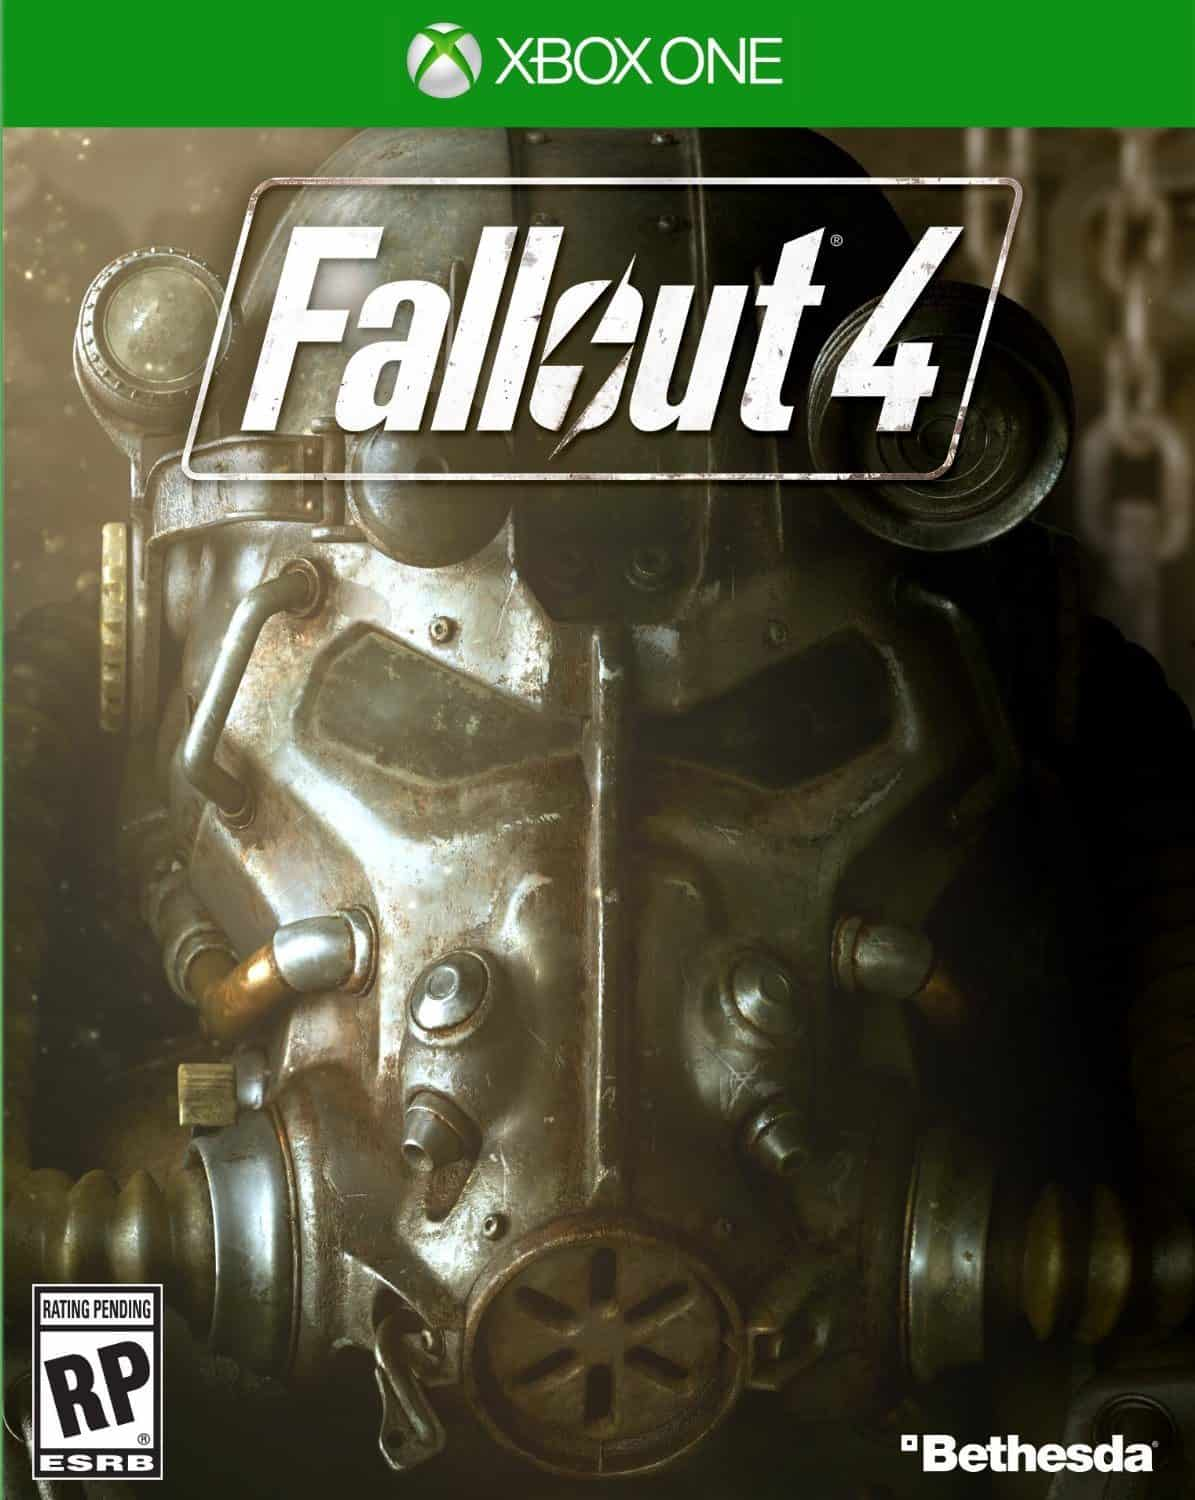 Game Review: Fallout 4 (Xbox One)